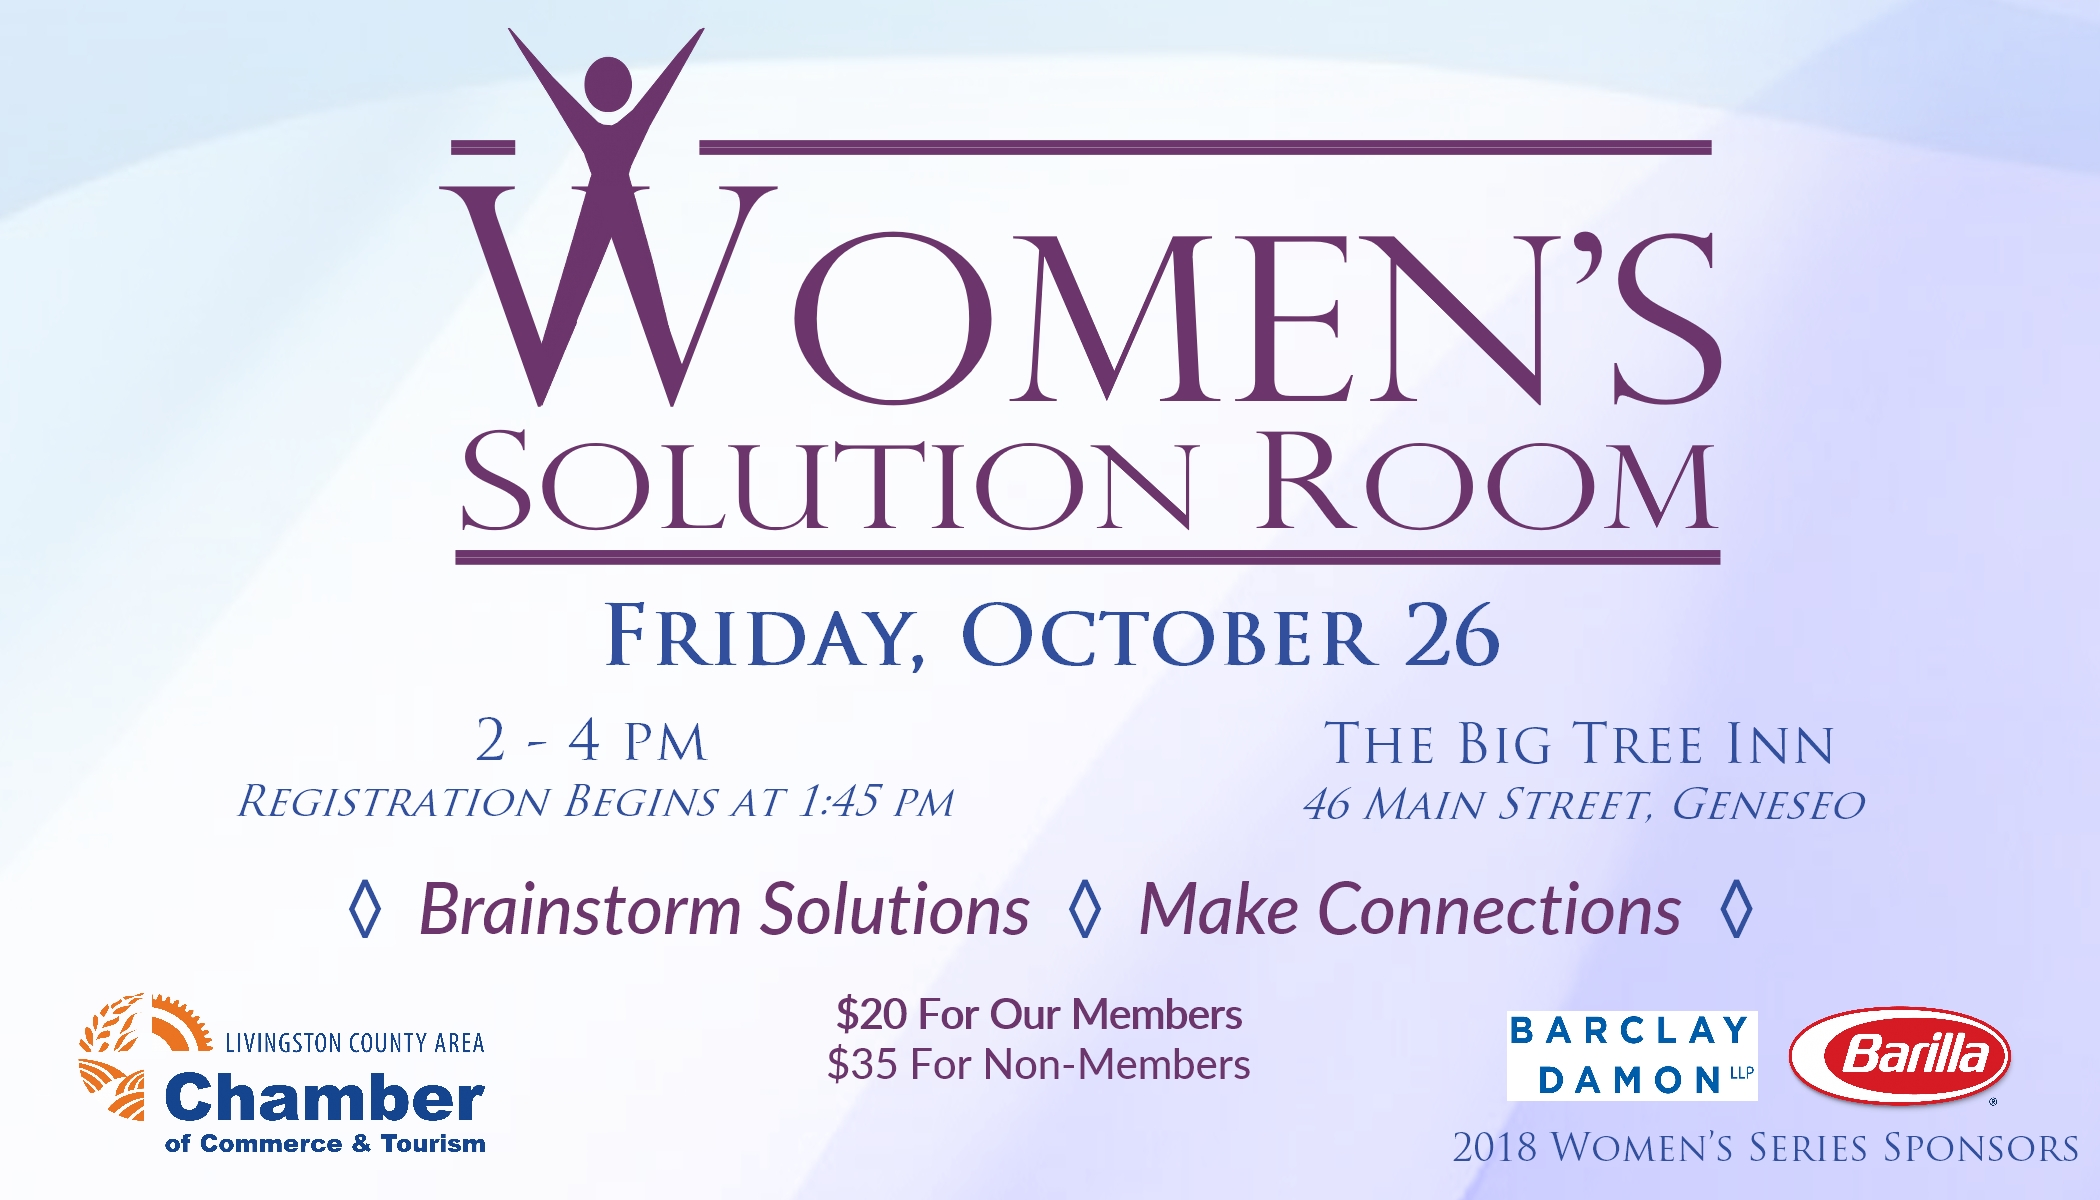 Livingston County Chamber of Commerce & Tourism's Women's Solution Room, Big Tree Inn, Barilla, Barclay & Damon